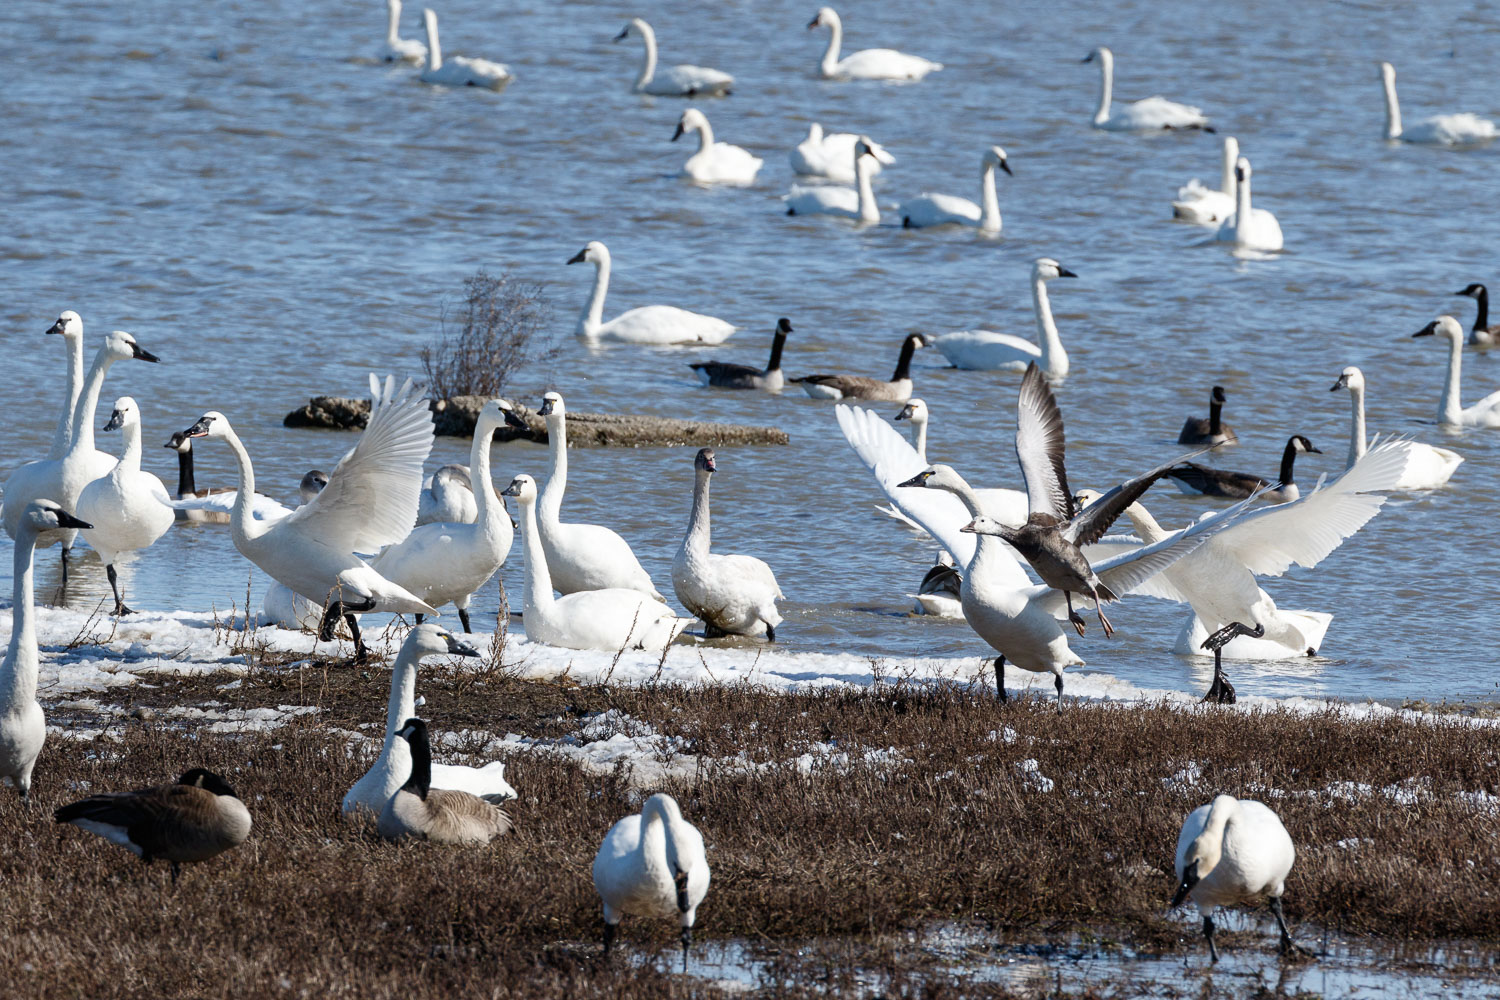 Tundra Swans and a Blue Morph Snow Goose